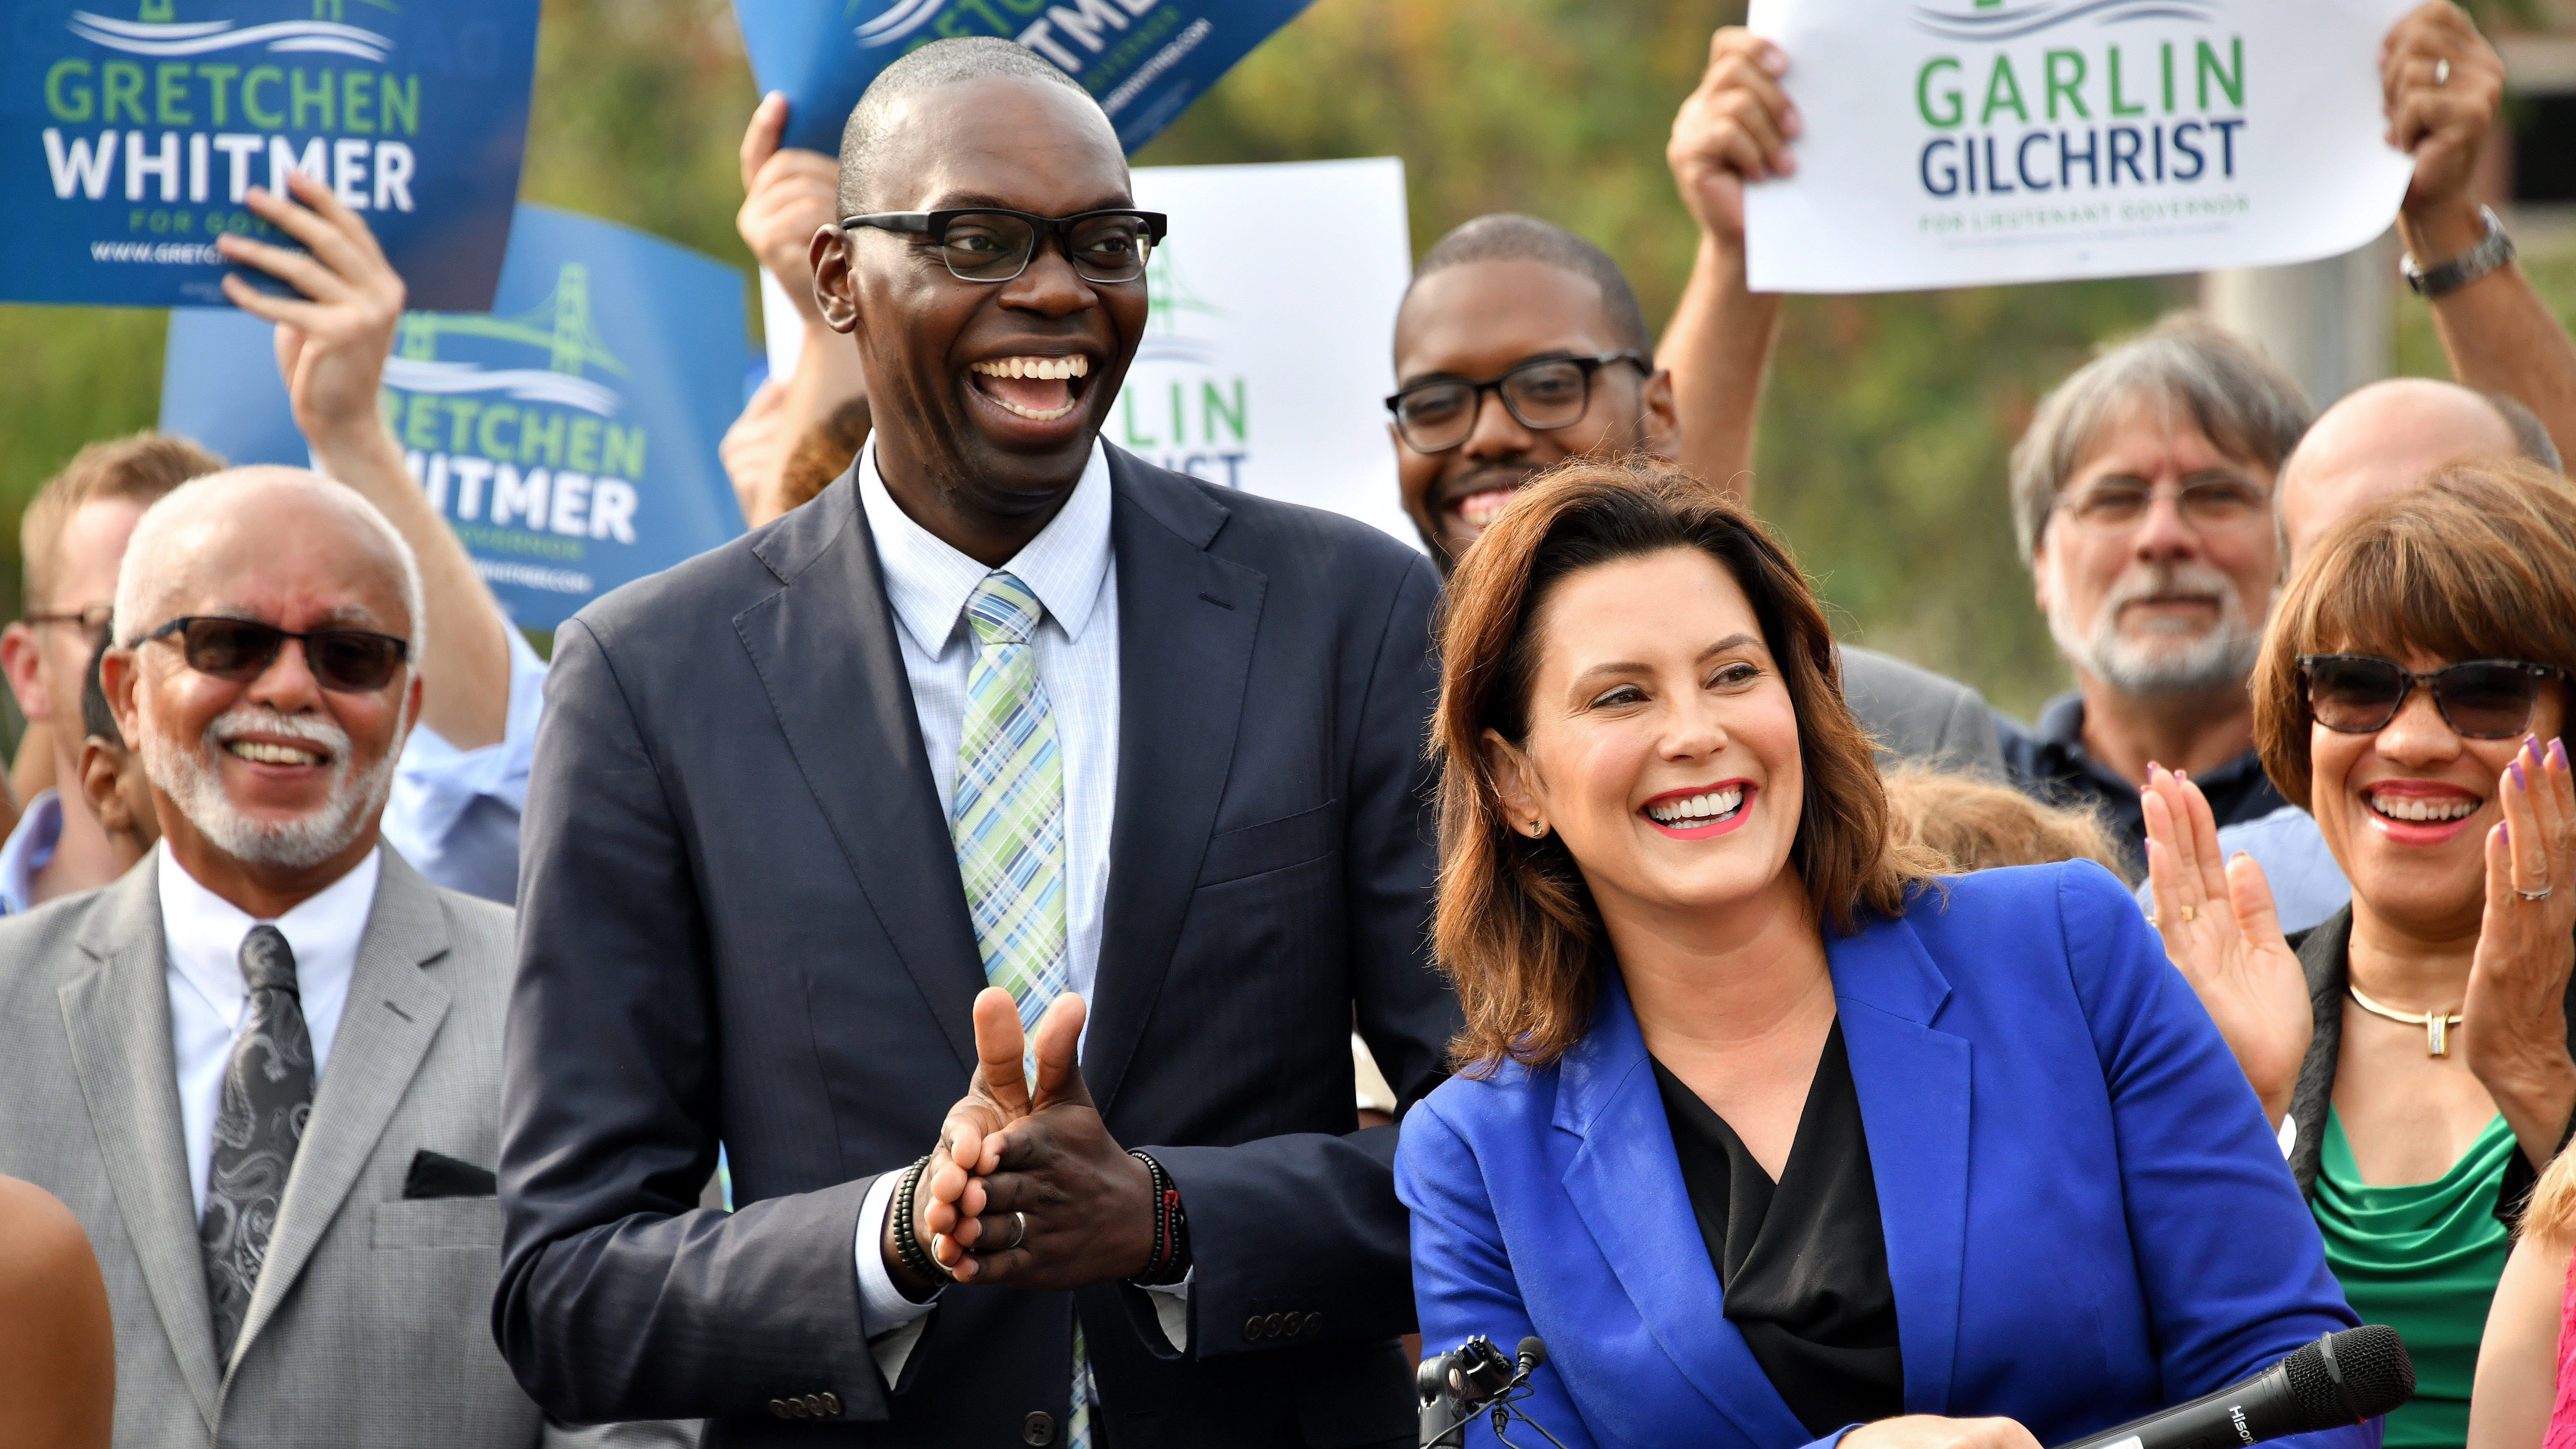 Whitmer picks energy over experience with Gilchrist selection